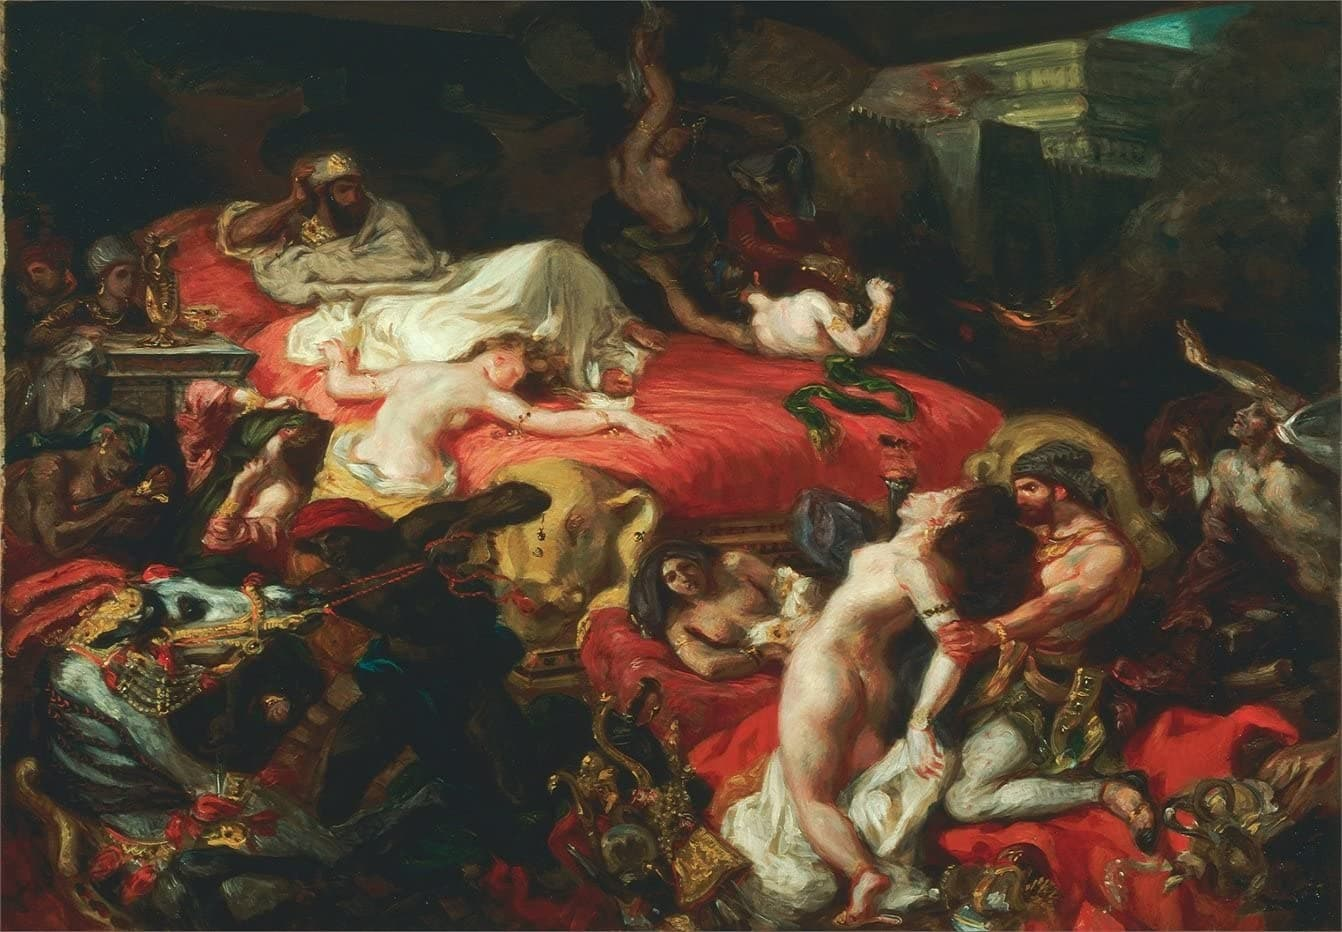 Eugene Delacroix 'The Death of Sardanapalus', 1844, Reproduction 200gsm A3 Vintage Poster